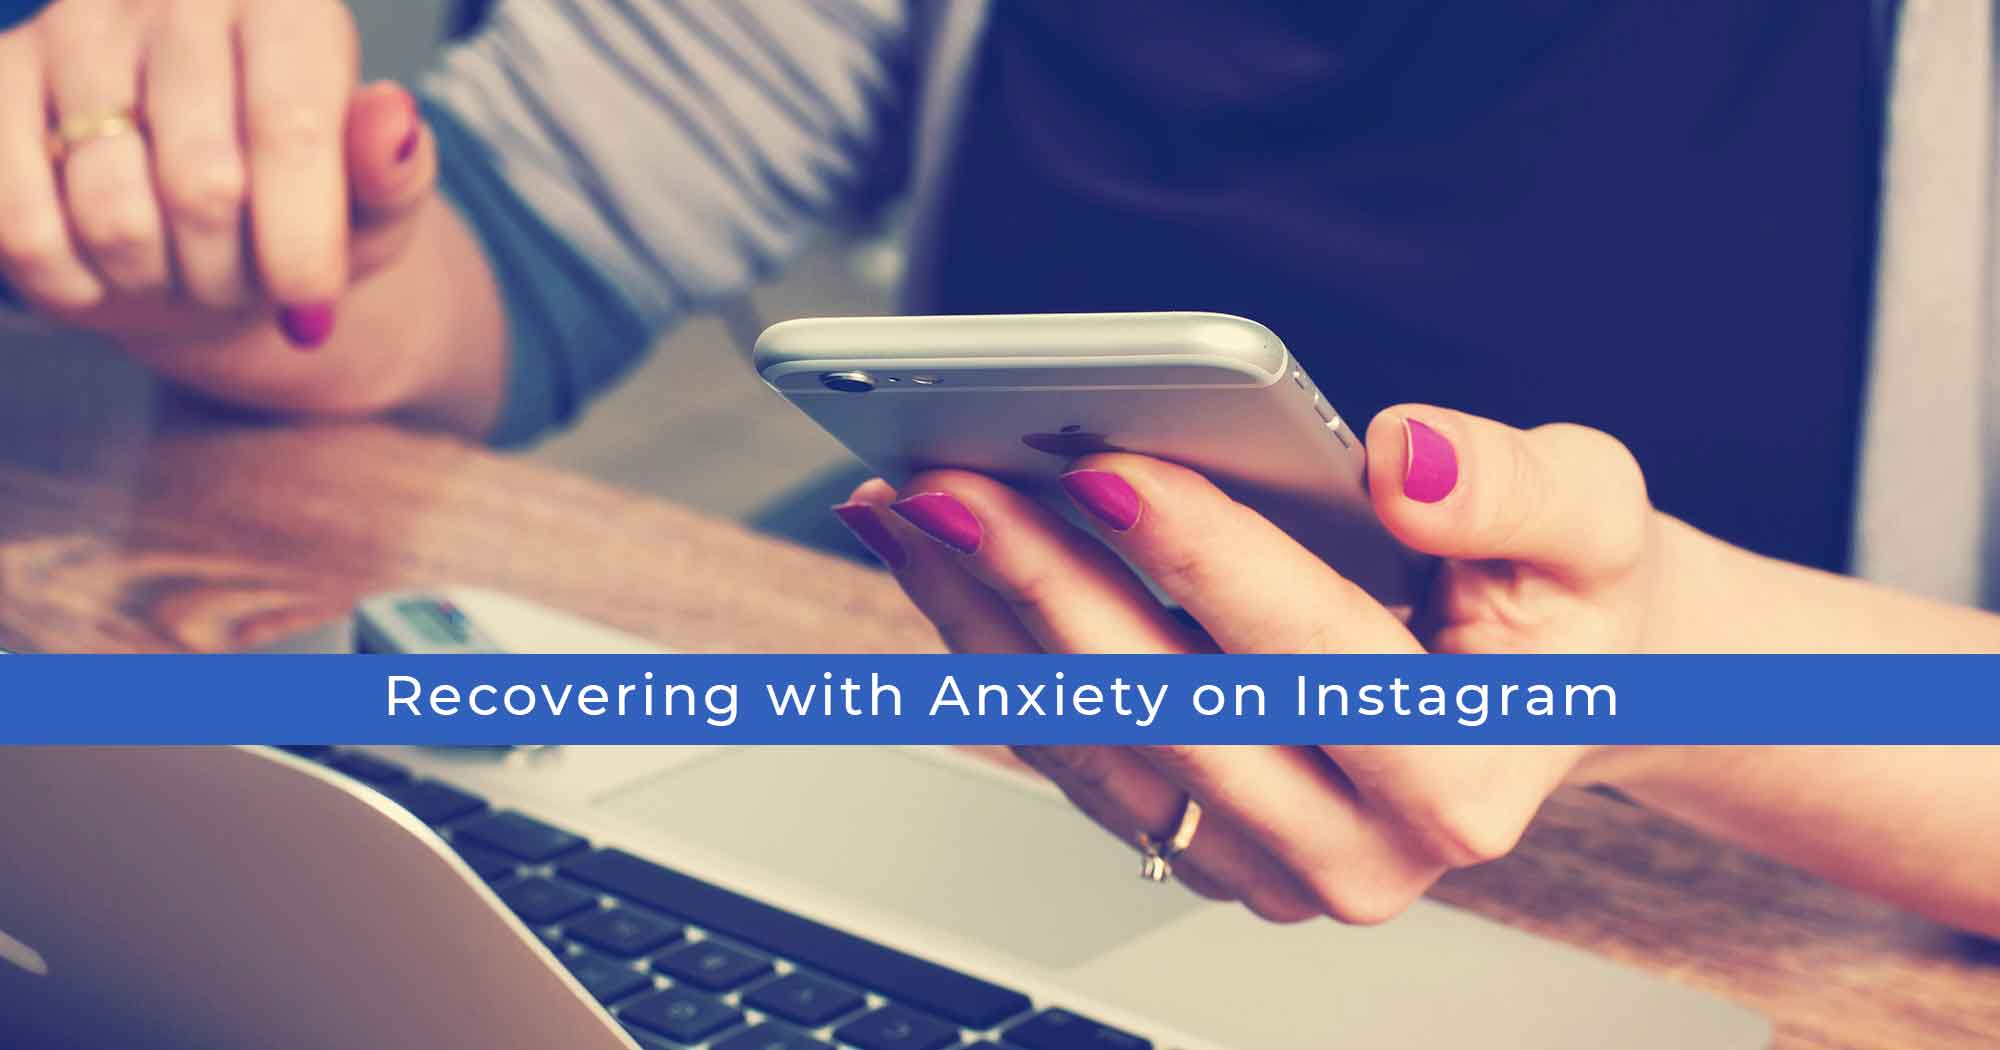 8 Accounts Featuring Recovery with Anxiety on Instagram